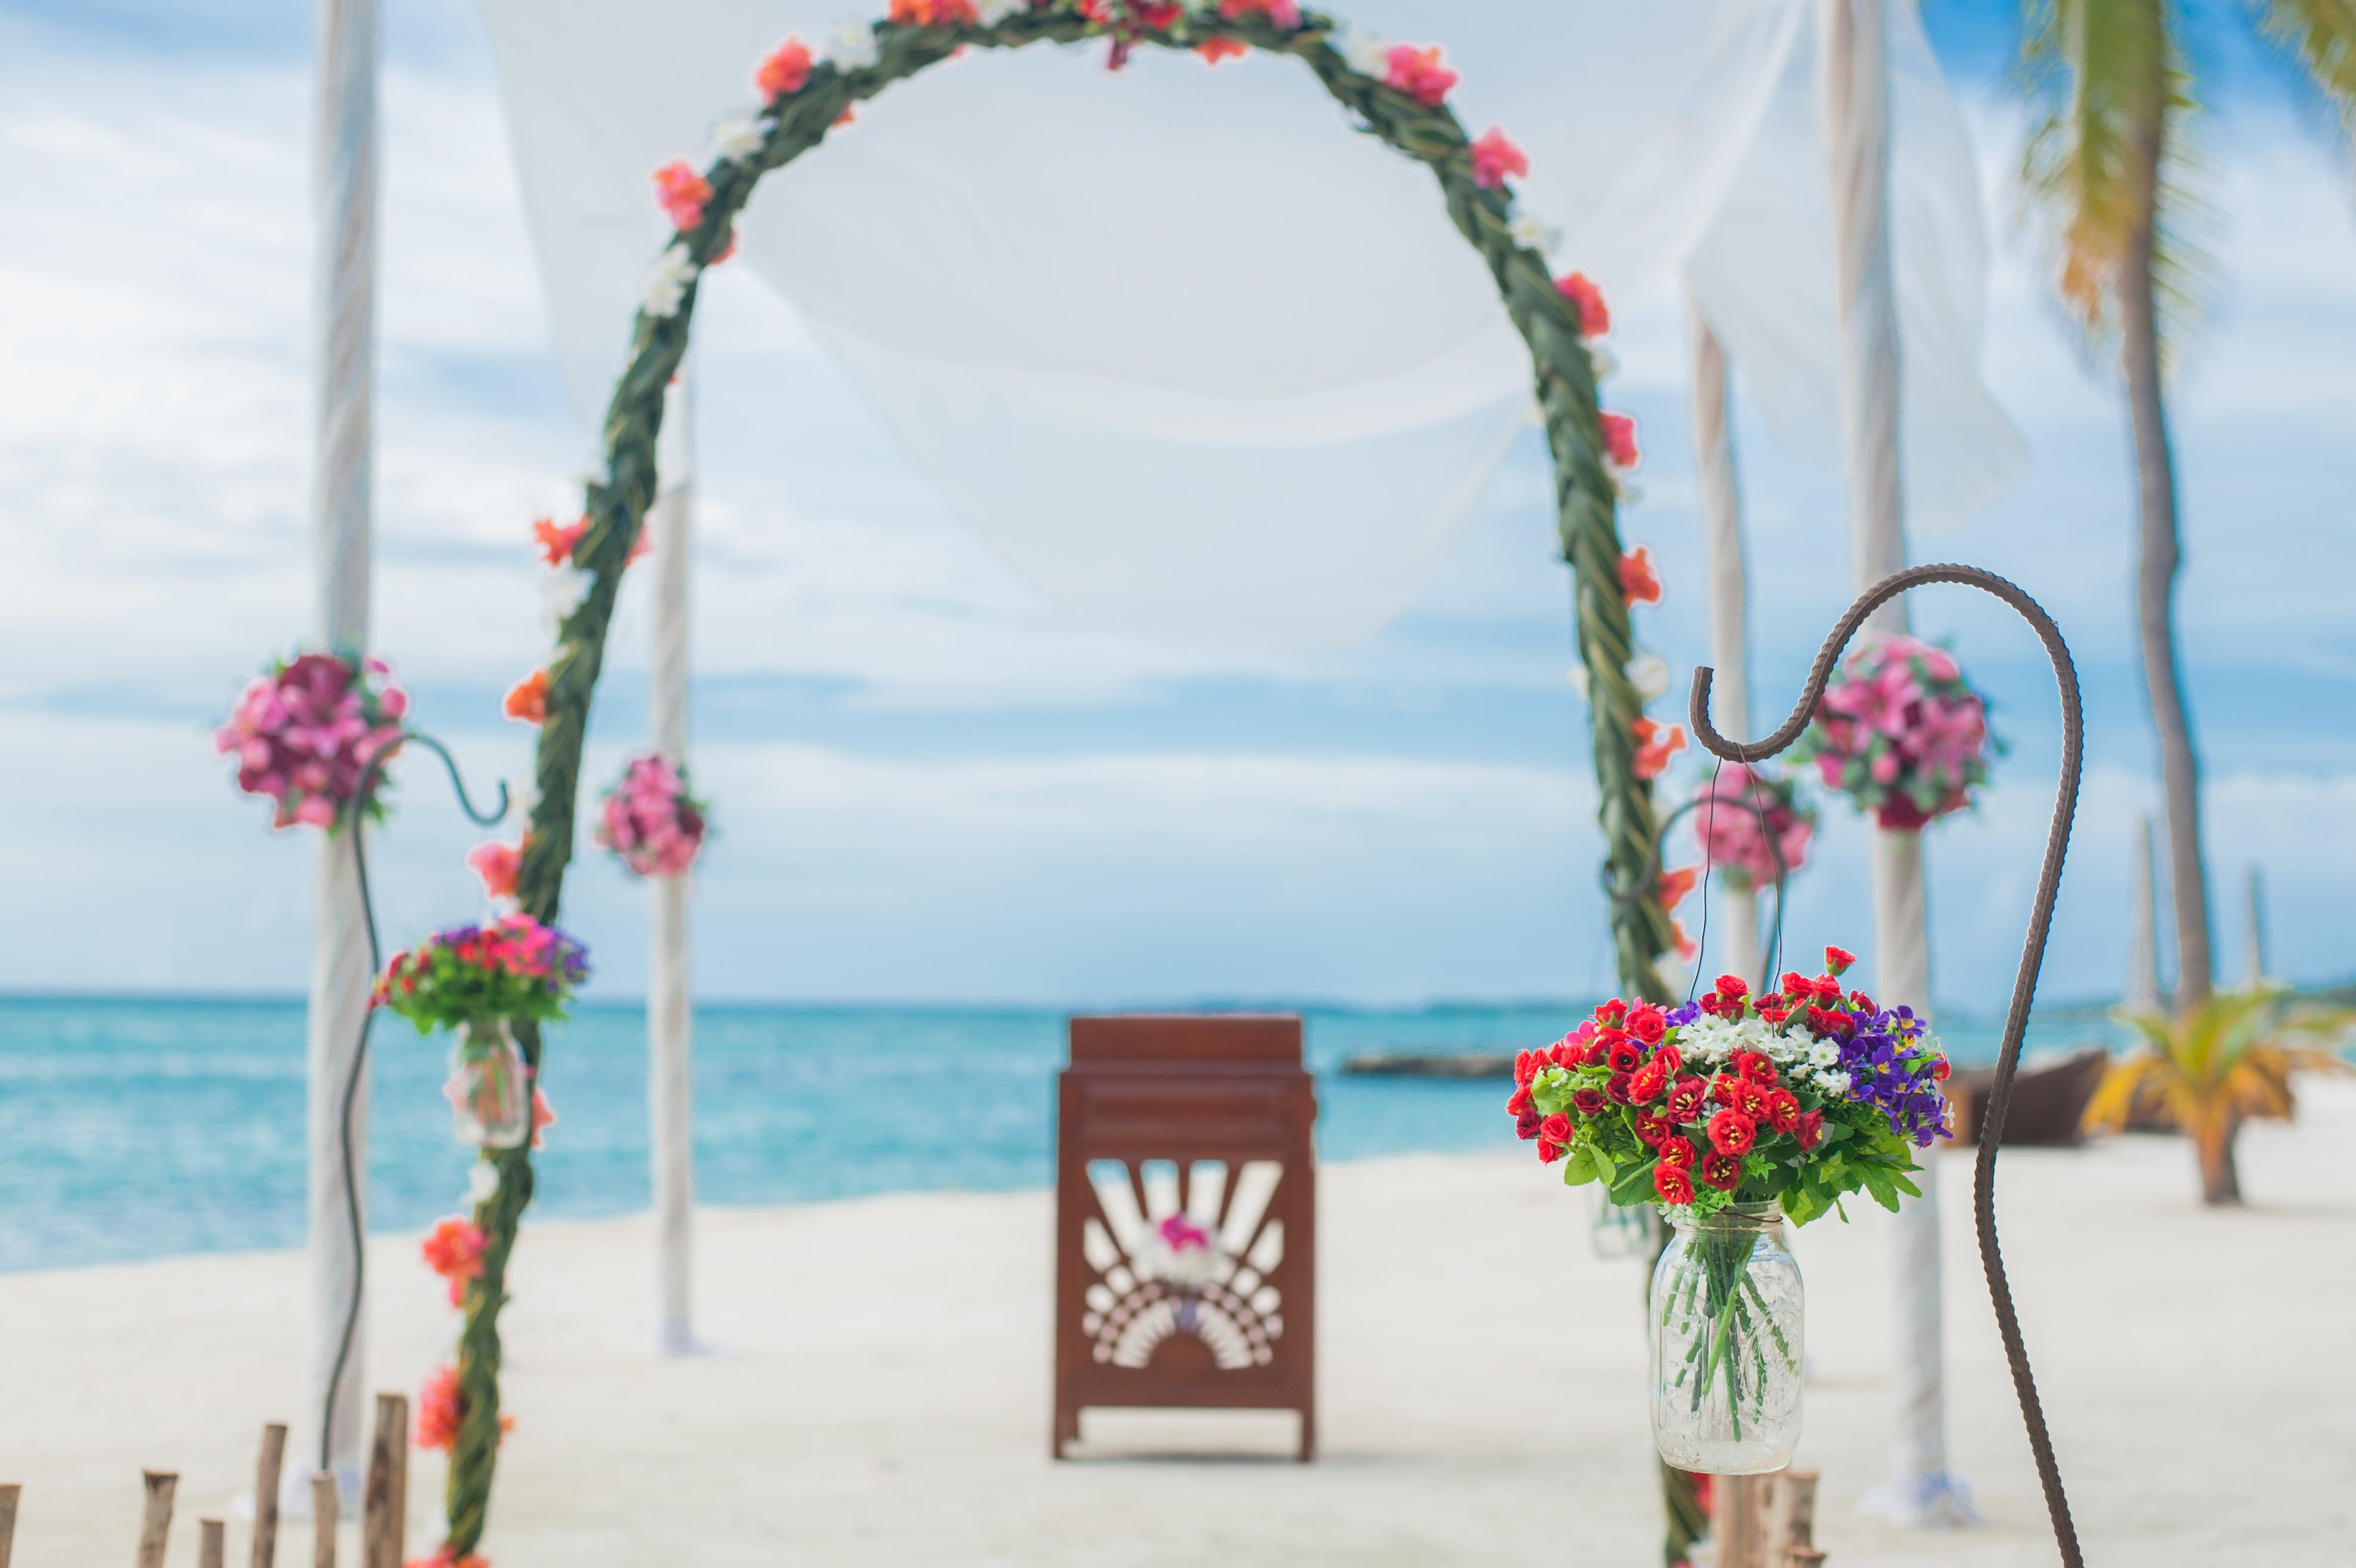 Free stock photo of beach, beach wedding, daylight, flowers